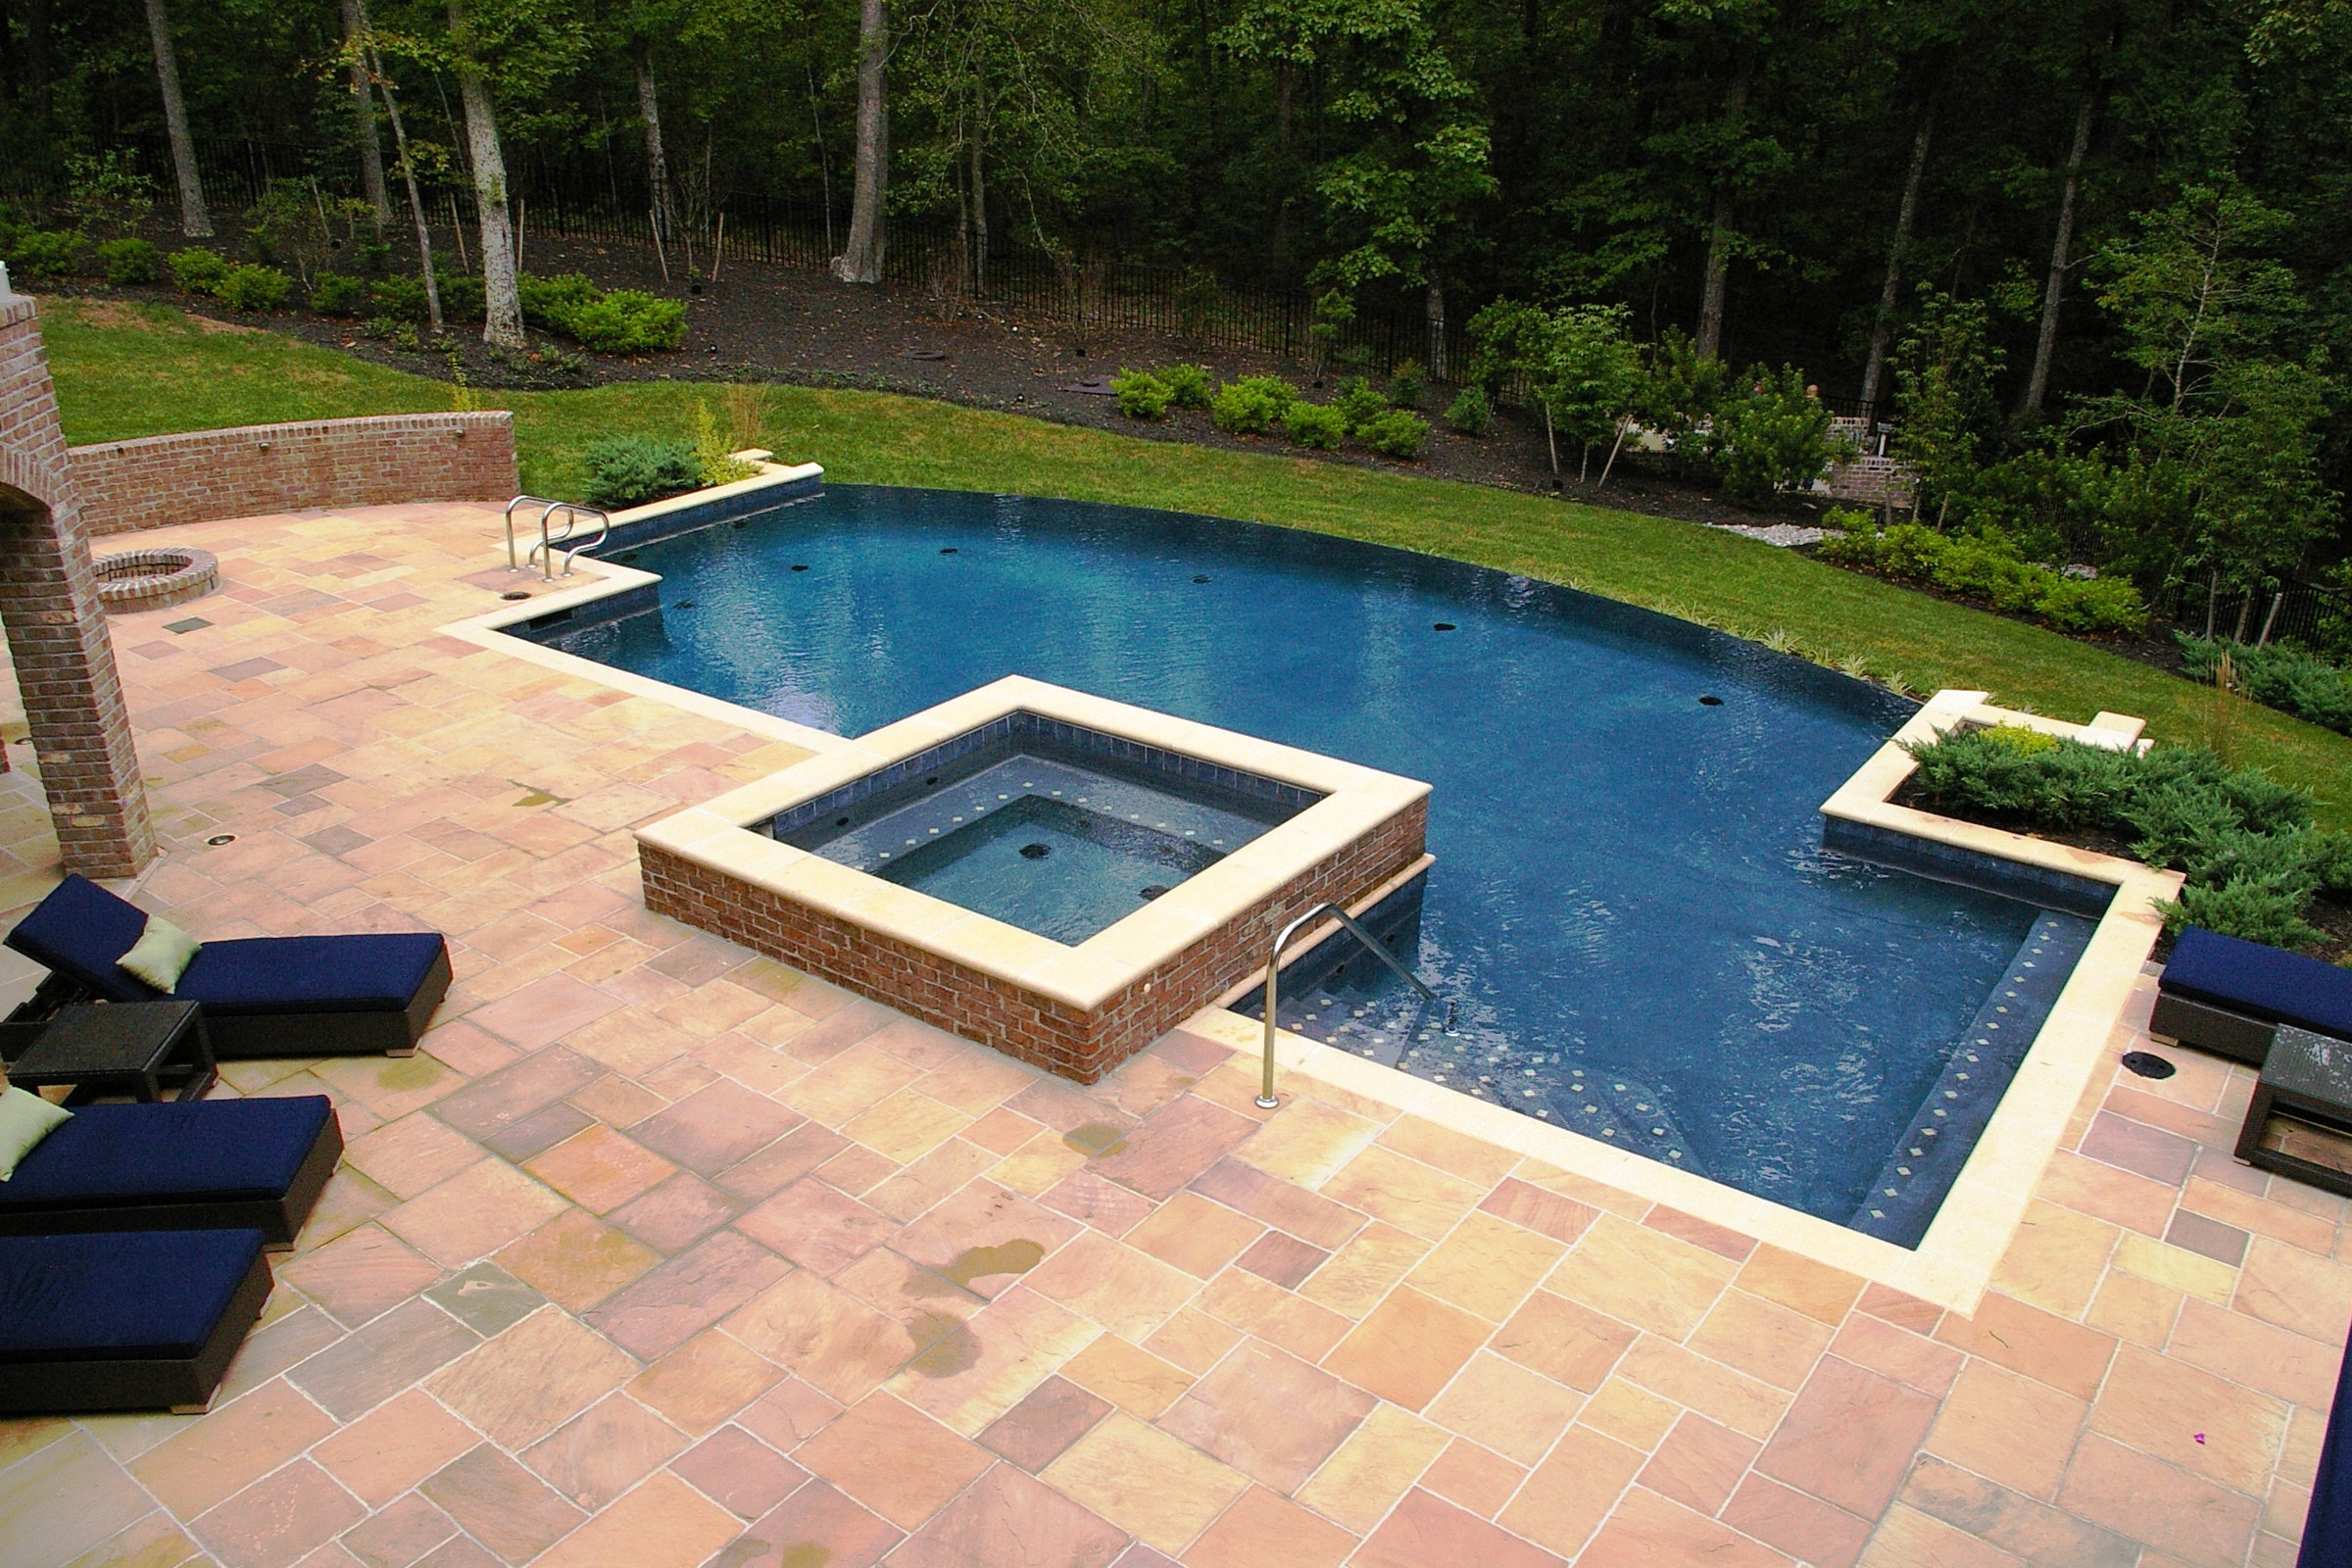 Swimming Pool Design for Your Beautiful Yard | HomesFeed